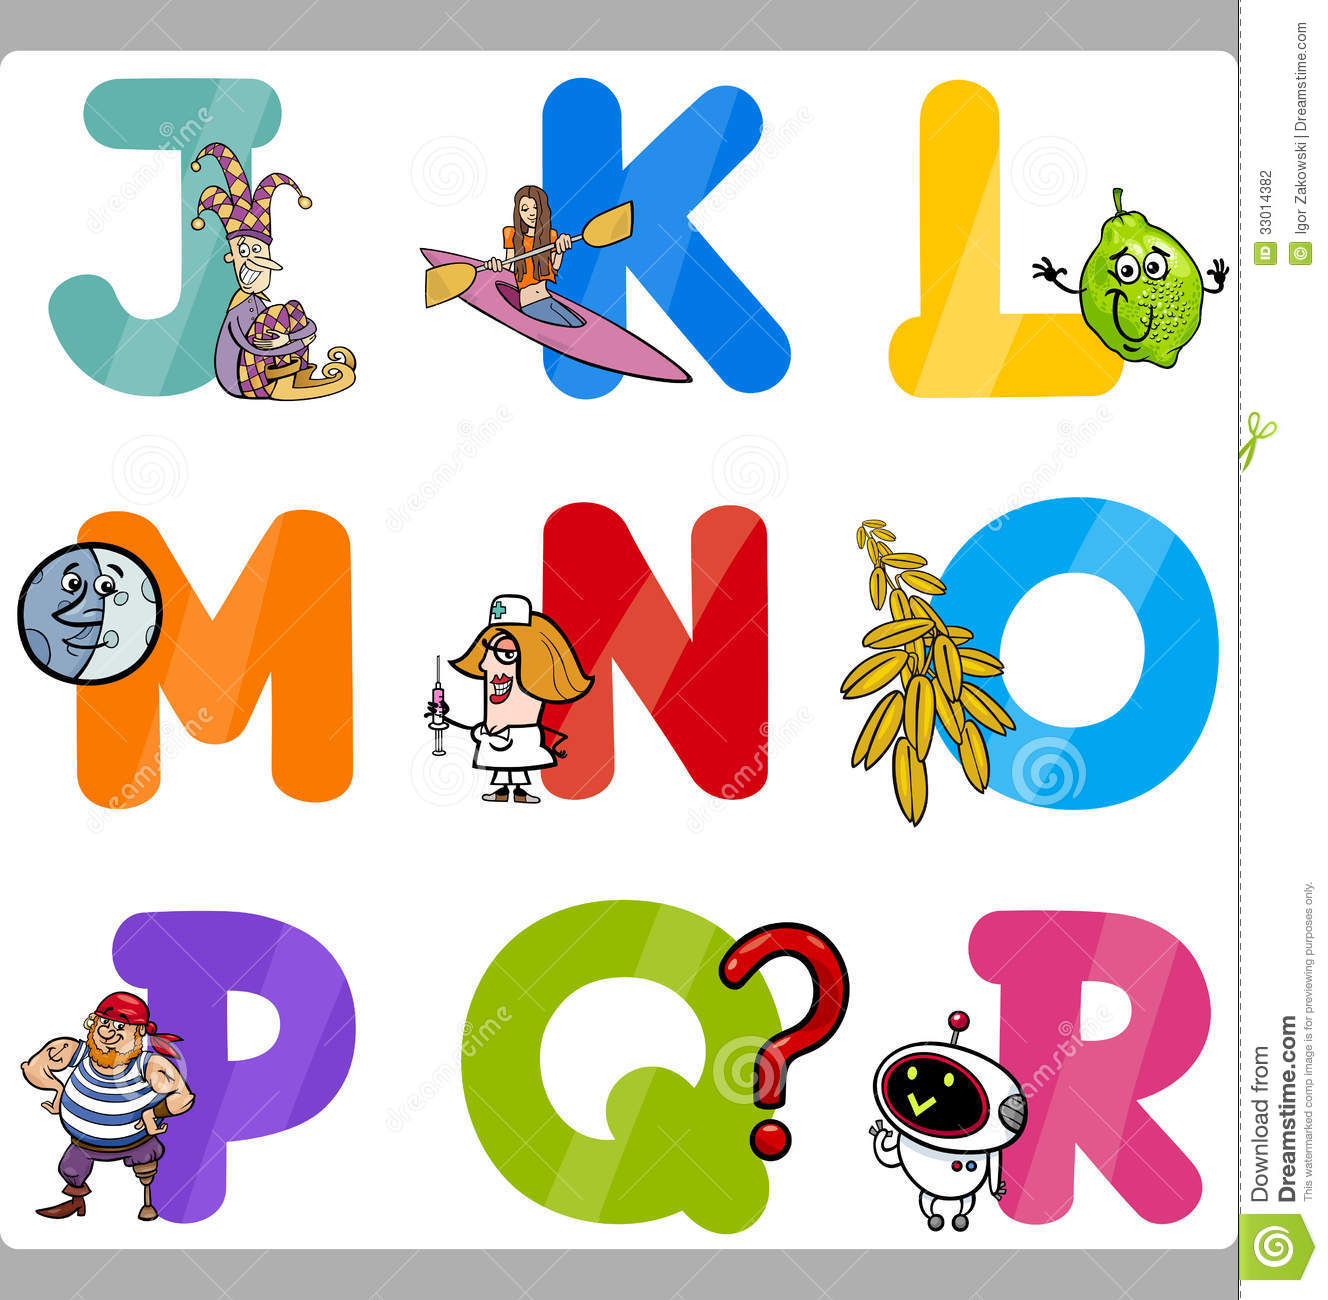 education cartoon alphabet letters for kids - Alphabet Pictures For Kids